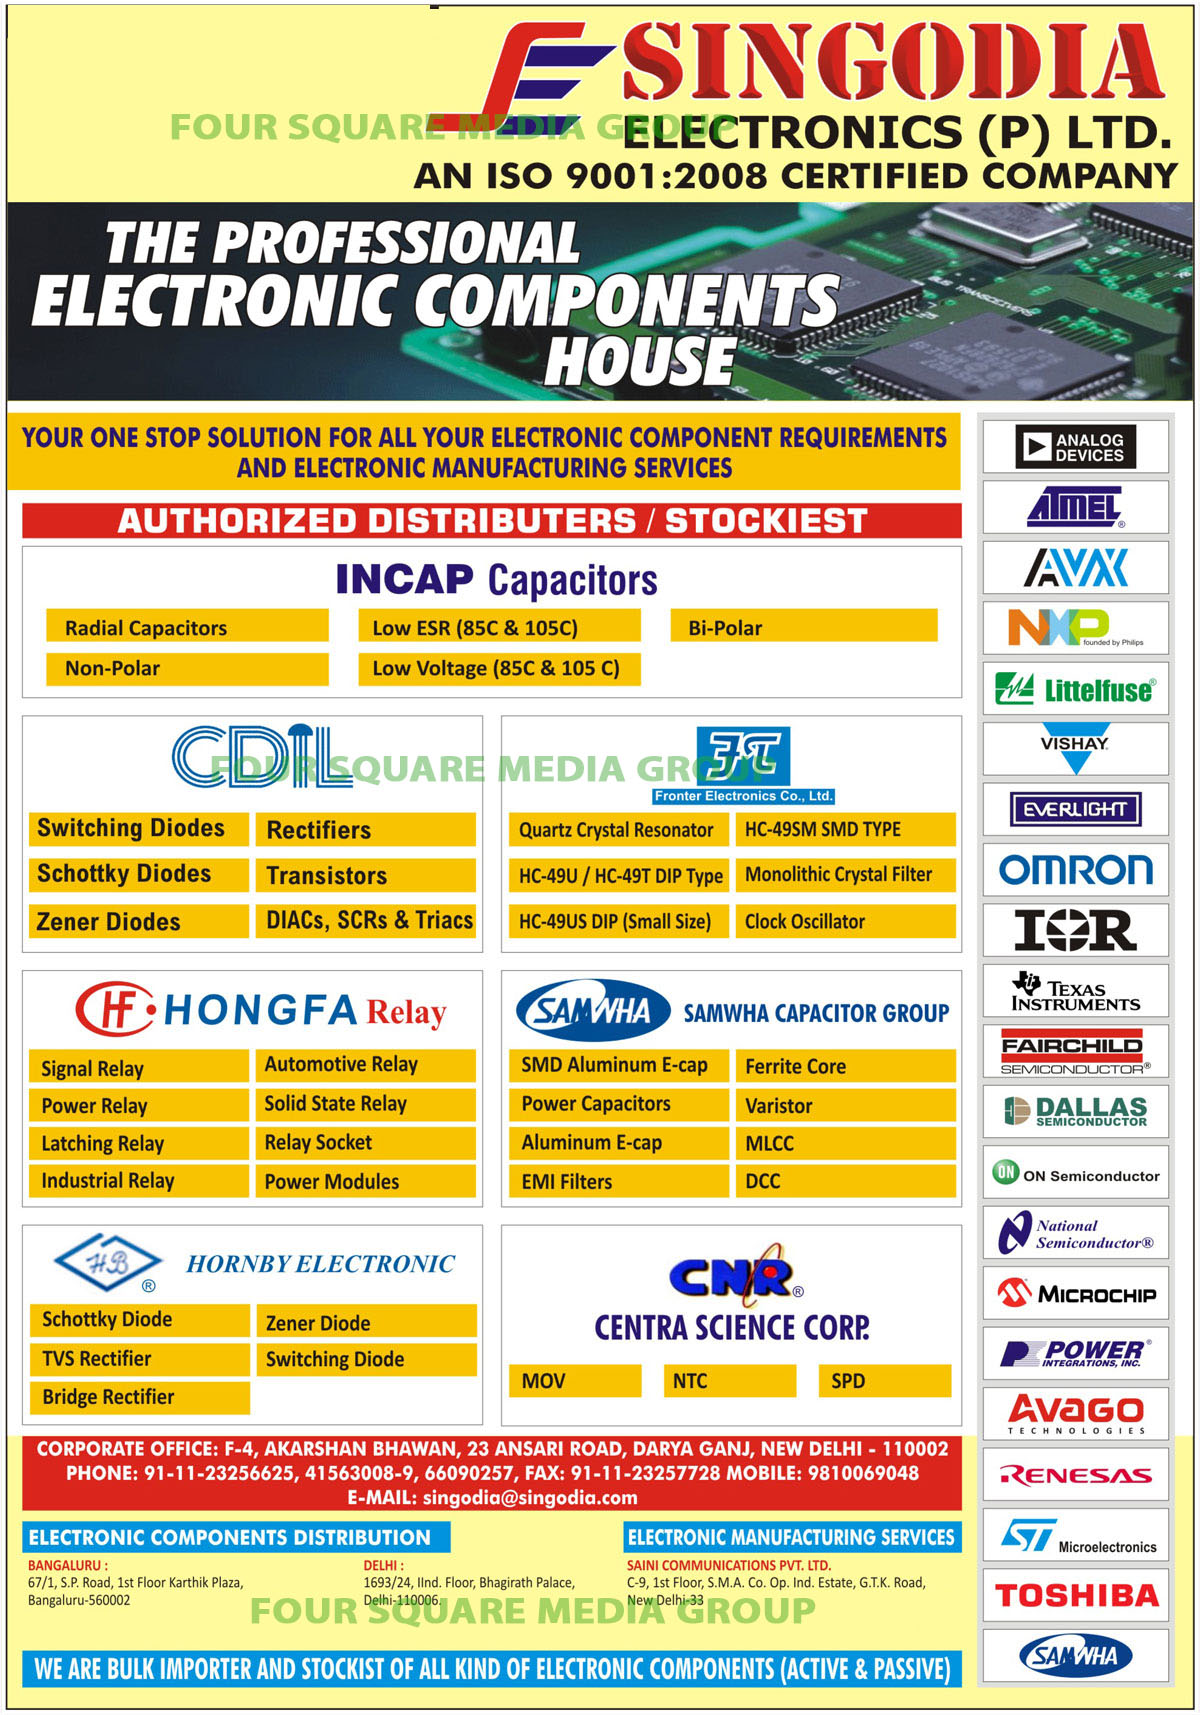 Electronic Components, CMOS Logics, Linears, Transistors, SCRs, Voltage Regulators, Crystals, Eproms, E Eproms, Trimpots, Dials, AD Converters, DA Converters, Tantalum Capacitors, Static Ram, Dynamic Ram, Chip Resistance, MLCC, CMOS Pal, Fast Recovery Diodes, Micro Processors, Schottky Diodes, Microcontrollers, Led Displacys, LCDs, Relays,  Mosfets, IGBTs, Multilayer Capacitors, Connectors, Sockets, Rectifiers, Thyristors, Transistors, Darlington Transistors, Switching Diodes, Zener Diodes, Schottky Barrier Diodes, DIACS, Traics, Transient Voltage Suppressors, Linear Voltage Regulators, Surface Mounted Semiconductors,Power Relay, Hermetically Sealed relay, Automotive Relay, Automotive Module, Signal Relay, Latching Relay, Industrial Relay, Relay Socket, Solid State Relays, MLCC, Radial MLCC, Axial MLCC, LC Filter, Radial Bead Filter, Axial Bead Filter, Emi Filter, Power Capacitors, Quartz Crystal Resonator, Voltage Regulators, LDO Voltage Regulators, VLDO Voltage Regulators, CMOS ULDO Voltage Regulators, DDR termination Switch, USB Switch, Step Down Swithing Voltage Regulators, LED Drivers, Signal Conditioning, Din Connectors, Emi RFI Filters, Fuse Holders, Power Distribution Units, Sockets, Power Entry, Radial Capacitor, Non Polar Capacitor, Bi Polar Capacitor, Low ESR Capacitor, Low Voltage Capacitor, Switching Diodes, Monolithic Crystal Filter, Clock Oscillator, Power Module, SMD Aluminium E Cap, Aluminium E Cap, Ferrite Core, Varistor, DCC, TVS Rectifier, Bridge Rectifier, NTC, SPD, Active Electronic Component, Passive Electronic Component